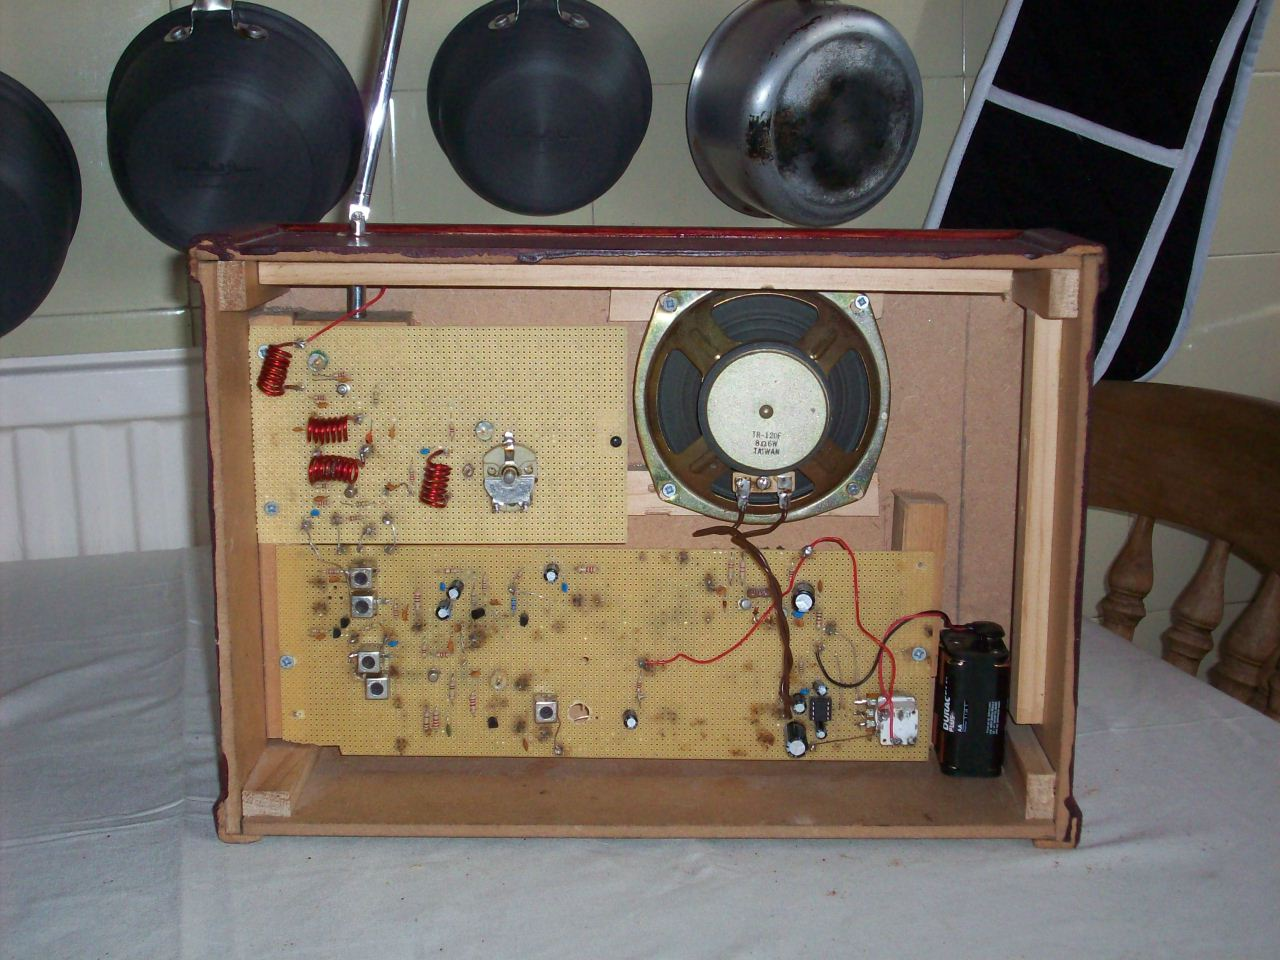 Transistor Fm Superhet Receiver Make This Simple Radio Circuit Using A Single Electronic Back View Of How The Rf Circuits In My Conversion Looks After Converting To Double Design